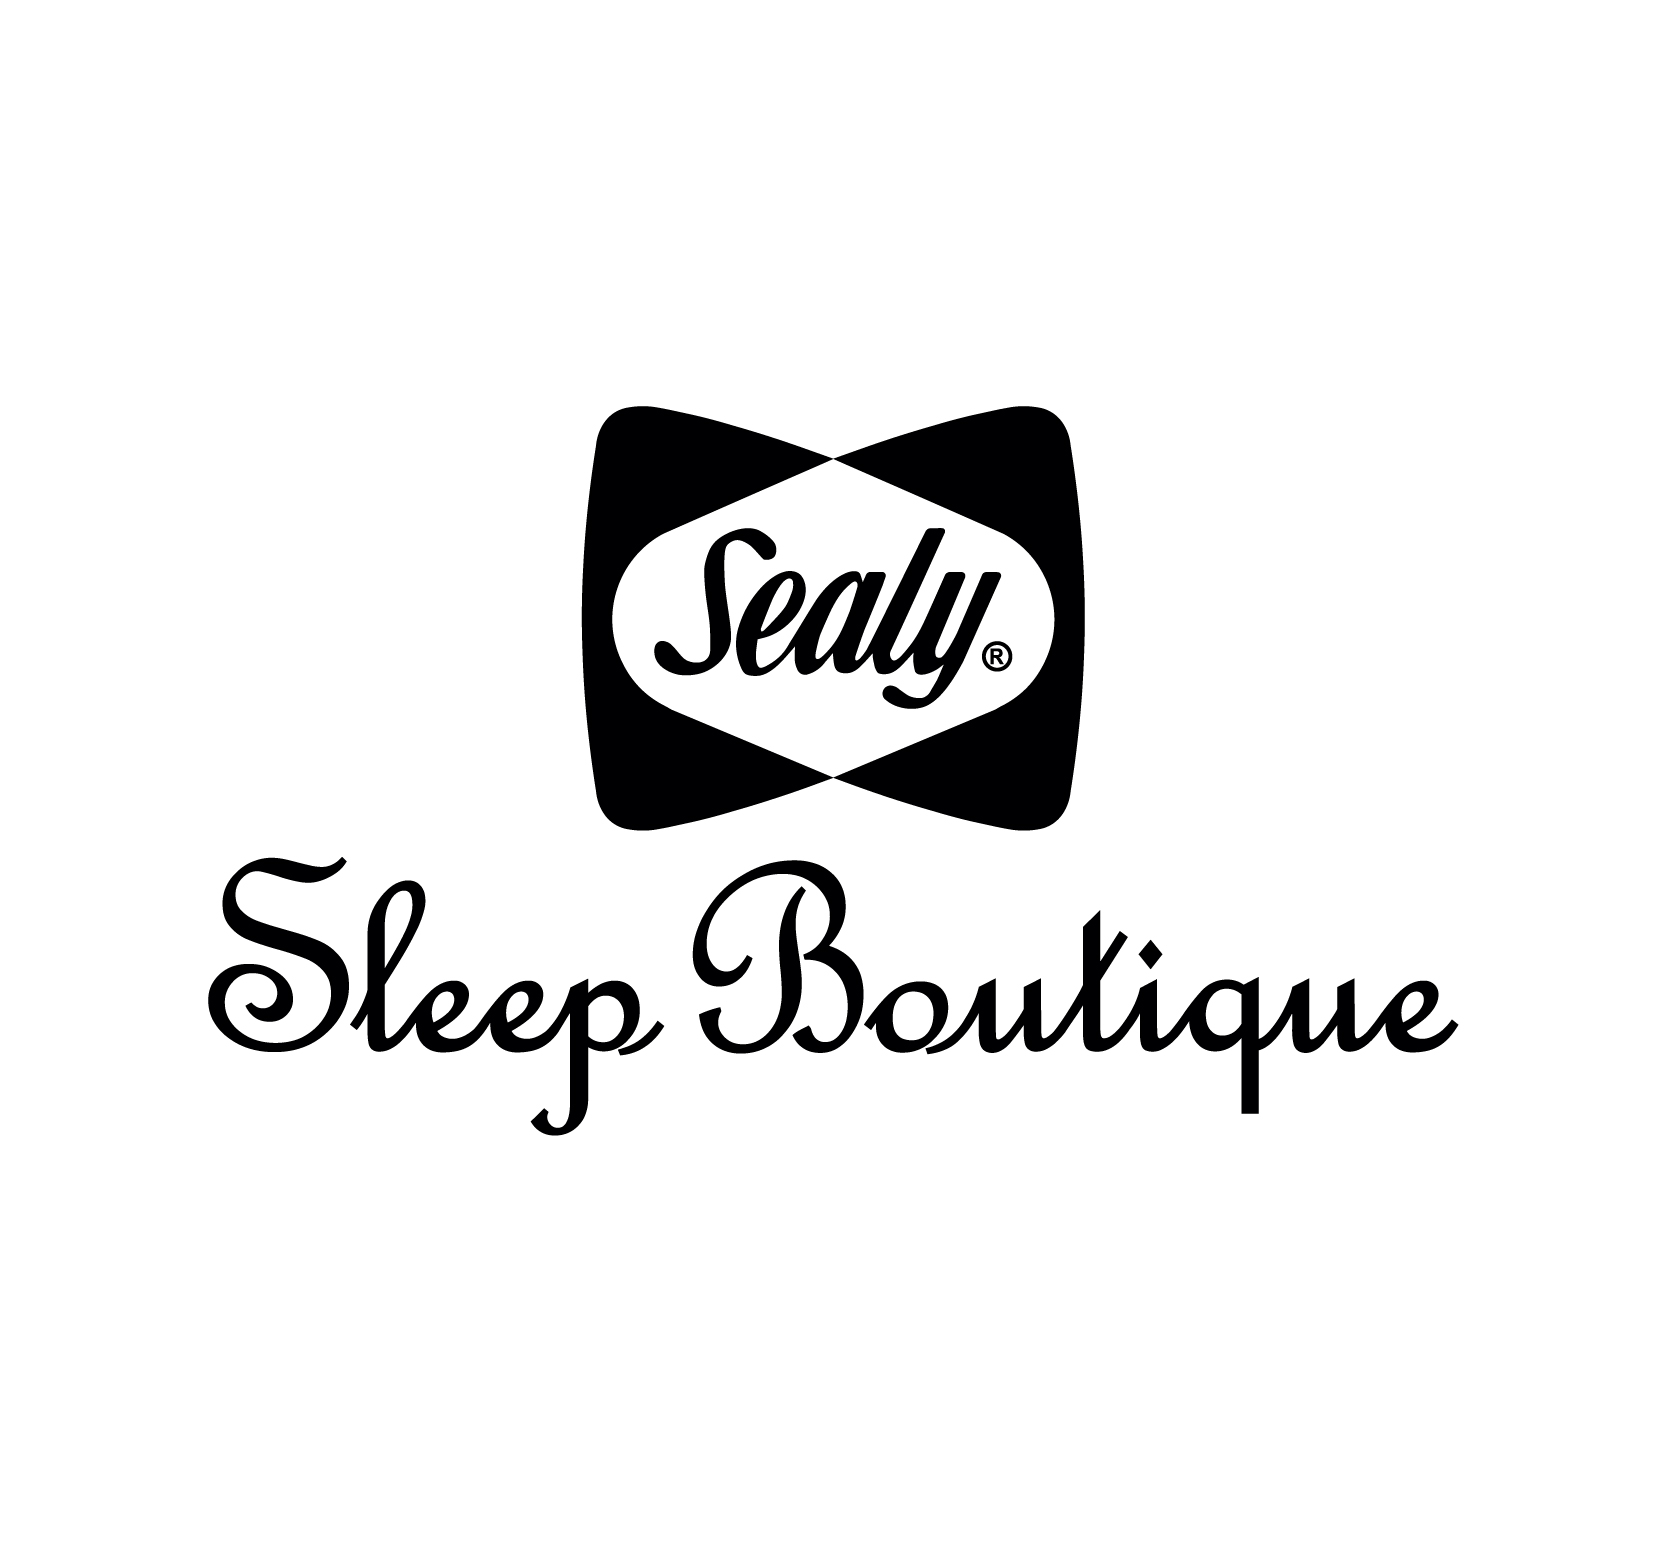 Sealy Sleep Boutique